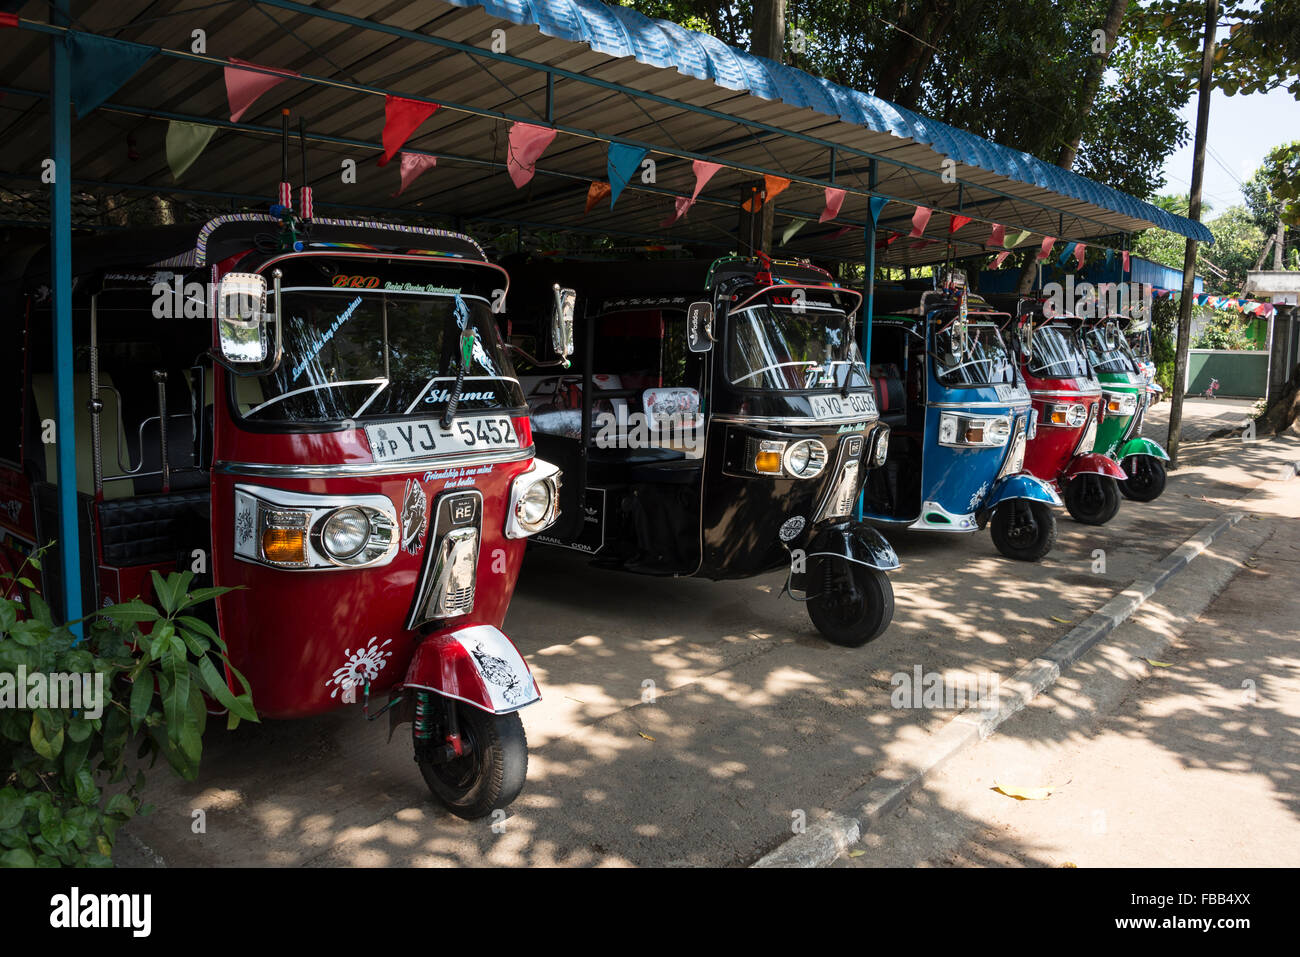 A row of 2nd hand three wheelers as they are known in sri lanka on